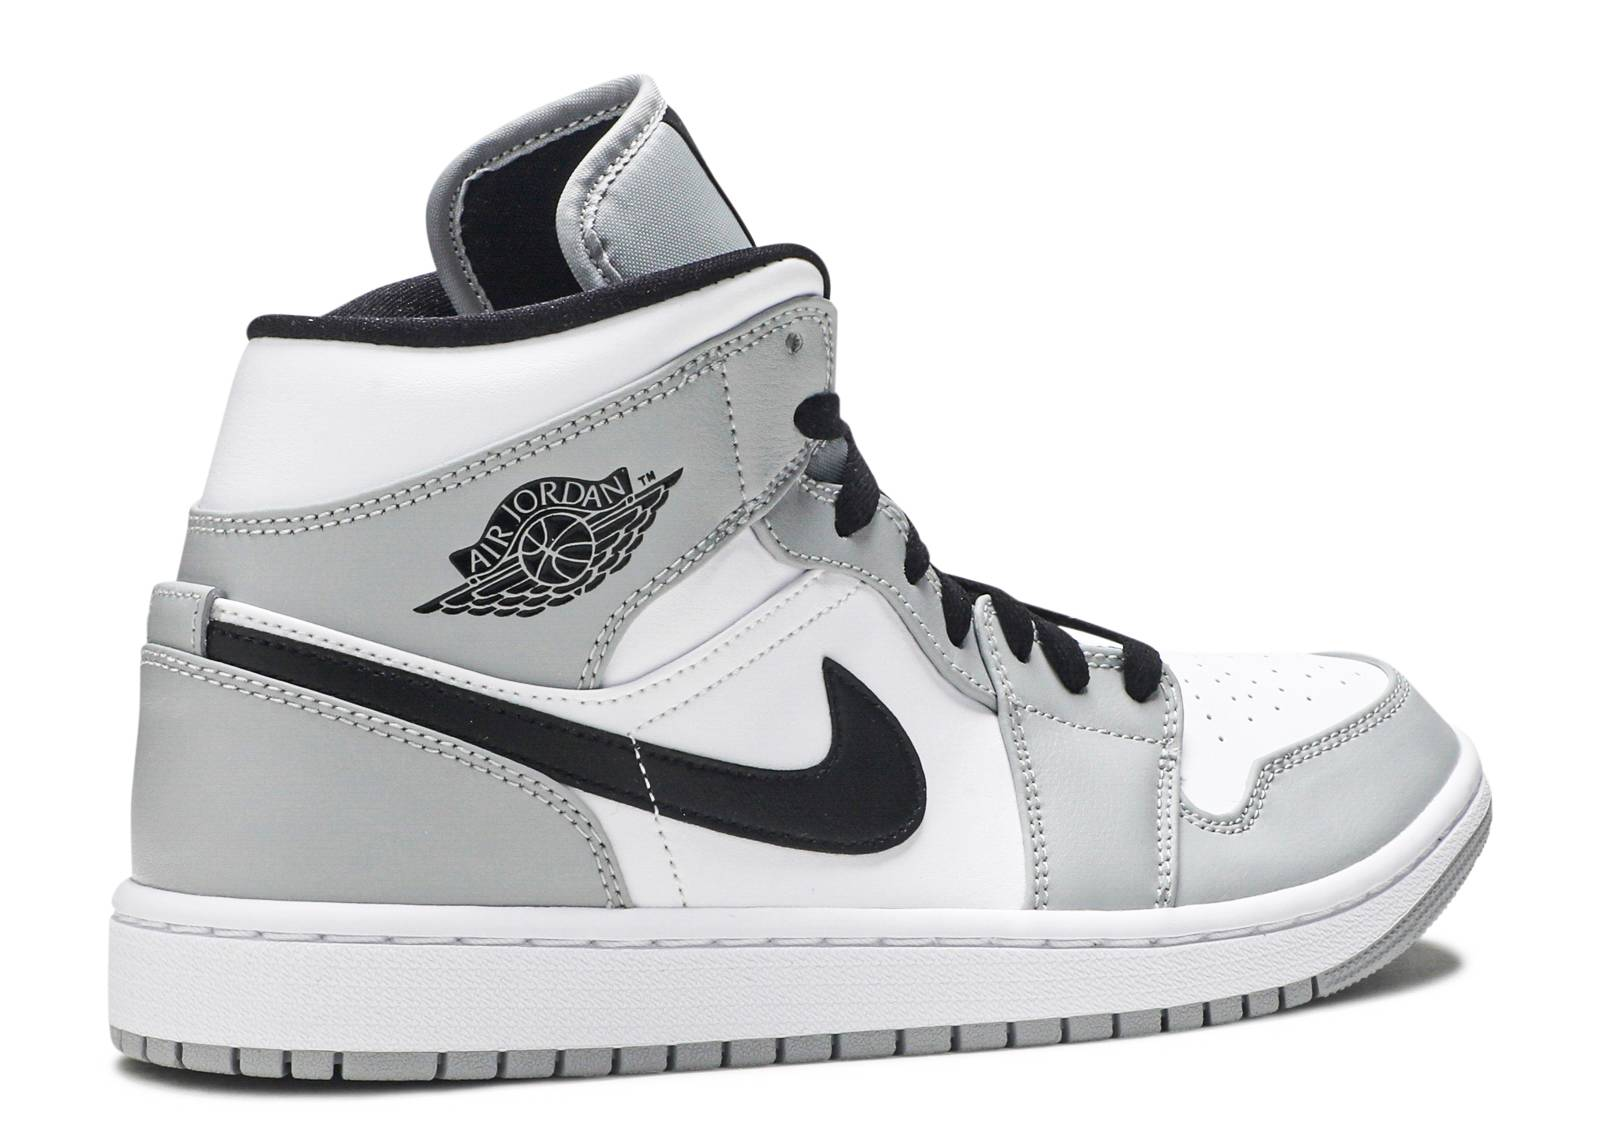 Air Jordan 1 Mid 'Smoke Grey'